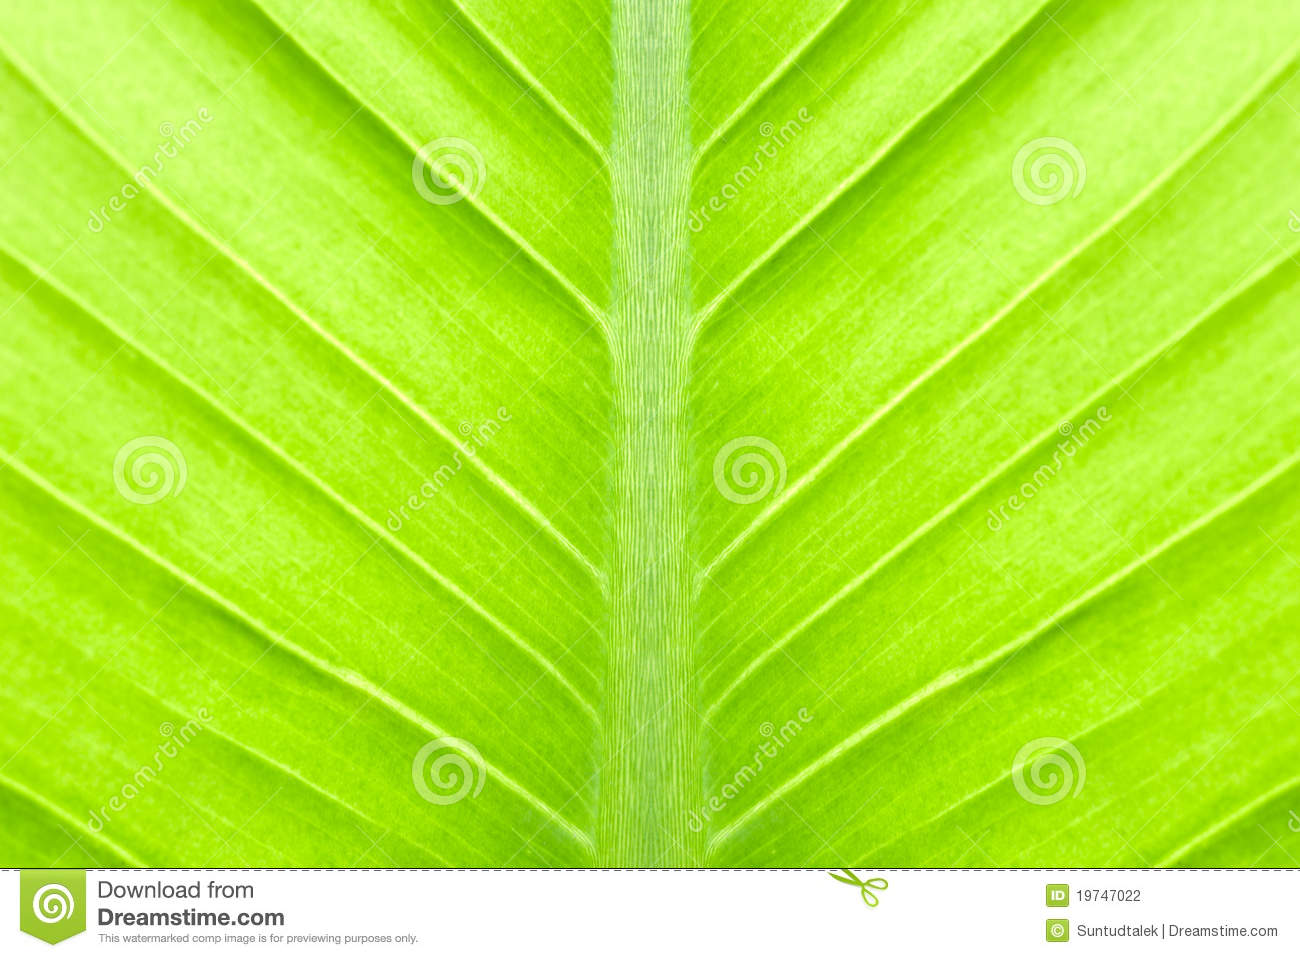 7 Abstract Green Leaf Icon Images